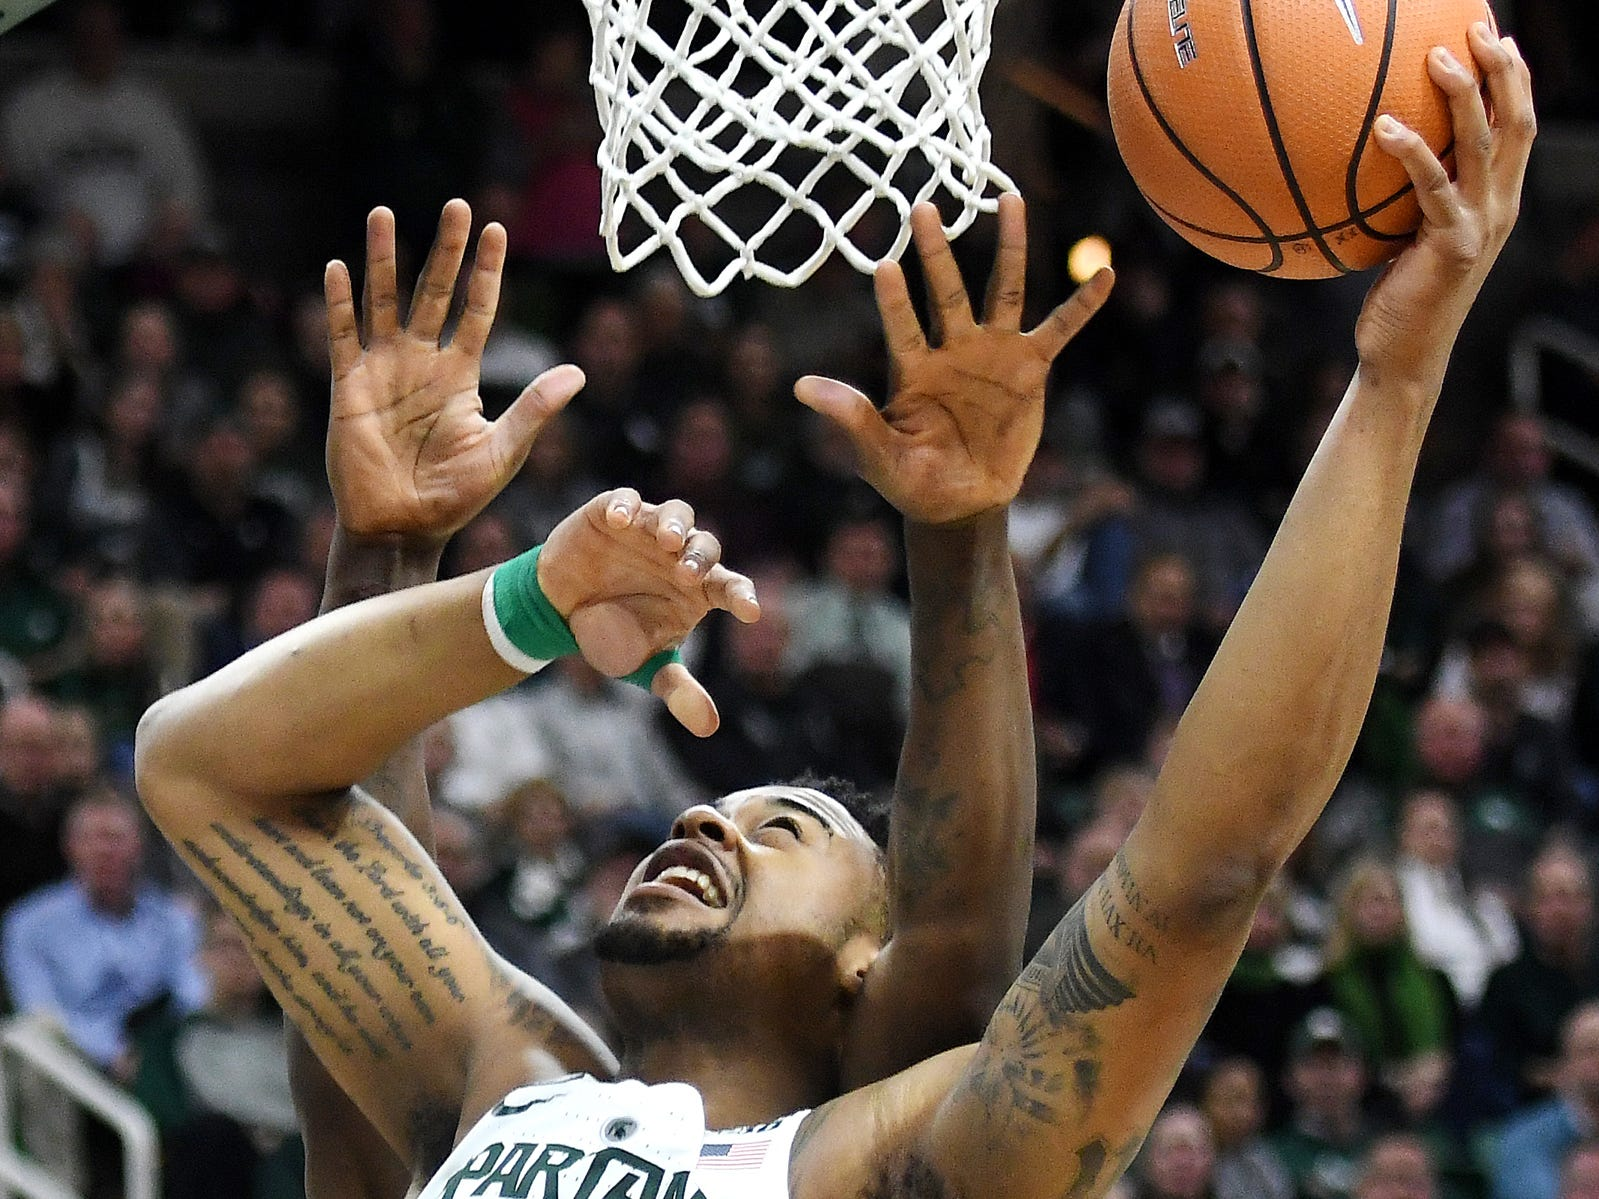 Michigan State's Nick Ward is fouled by Penn State's Mike Watkins while shooting during the second half on Wednesday, Jan. 31, 2018, at the Breslin Center in East Lansing. Ward made the layup. The Spartans won 76-68.